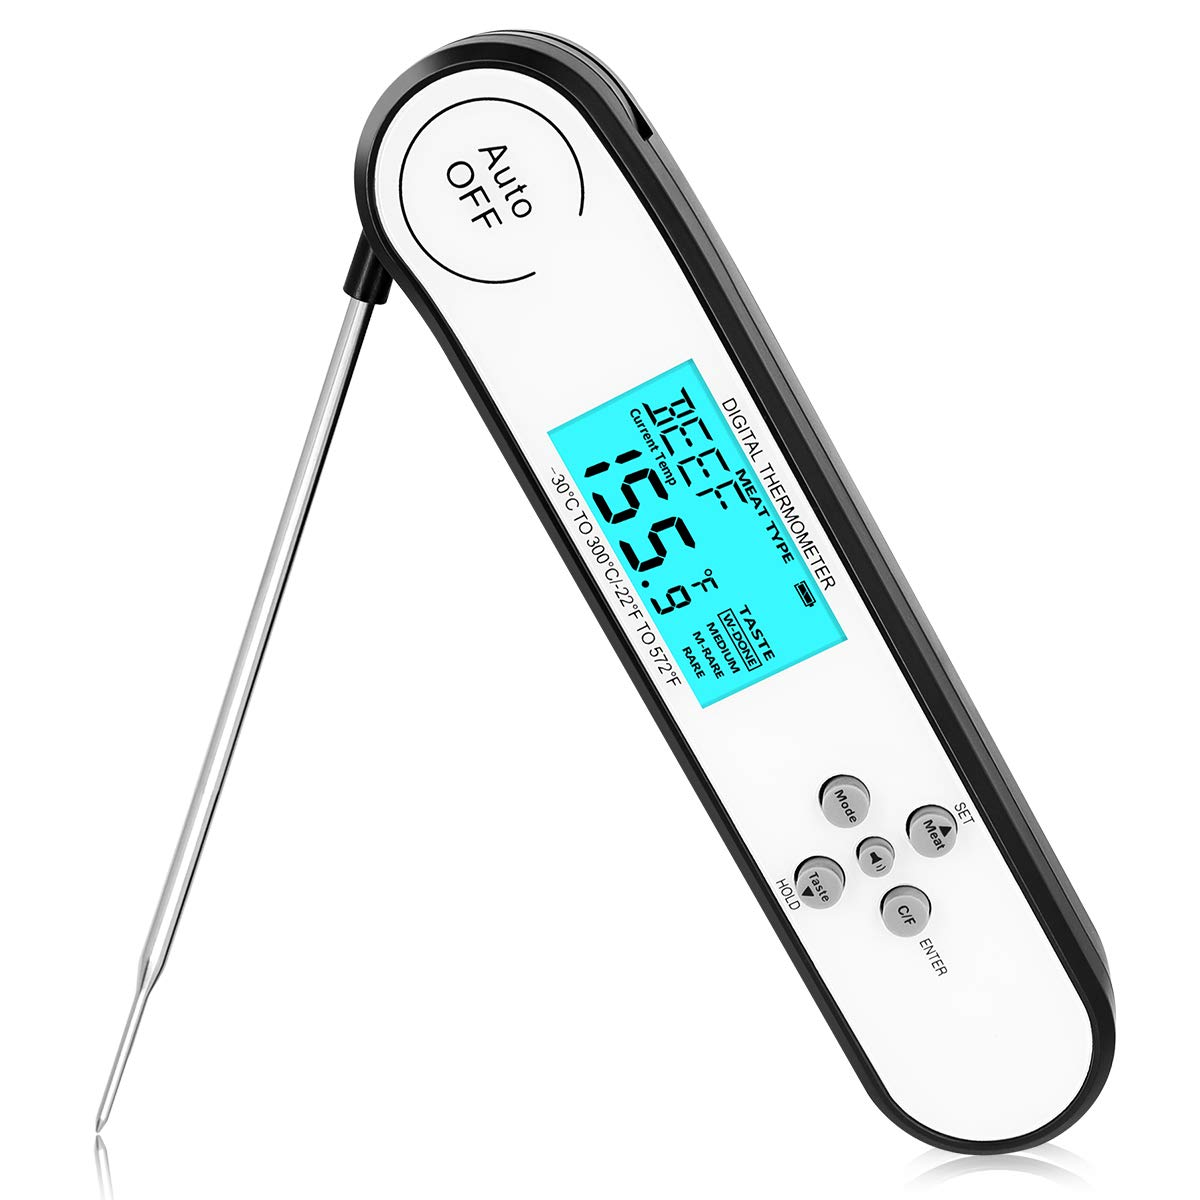 [Professional is The Best] Digital Instant Read Meat Thermometer Cooking Food Candy Kitchen Thermometer with Backlight and Magnet for Oil Deep Fry BBQ Grill Smoker Thermometer